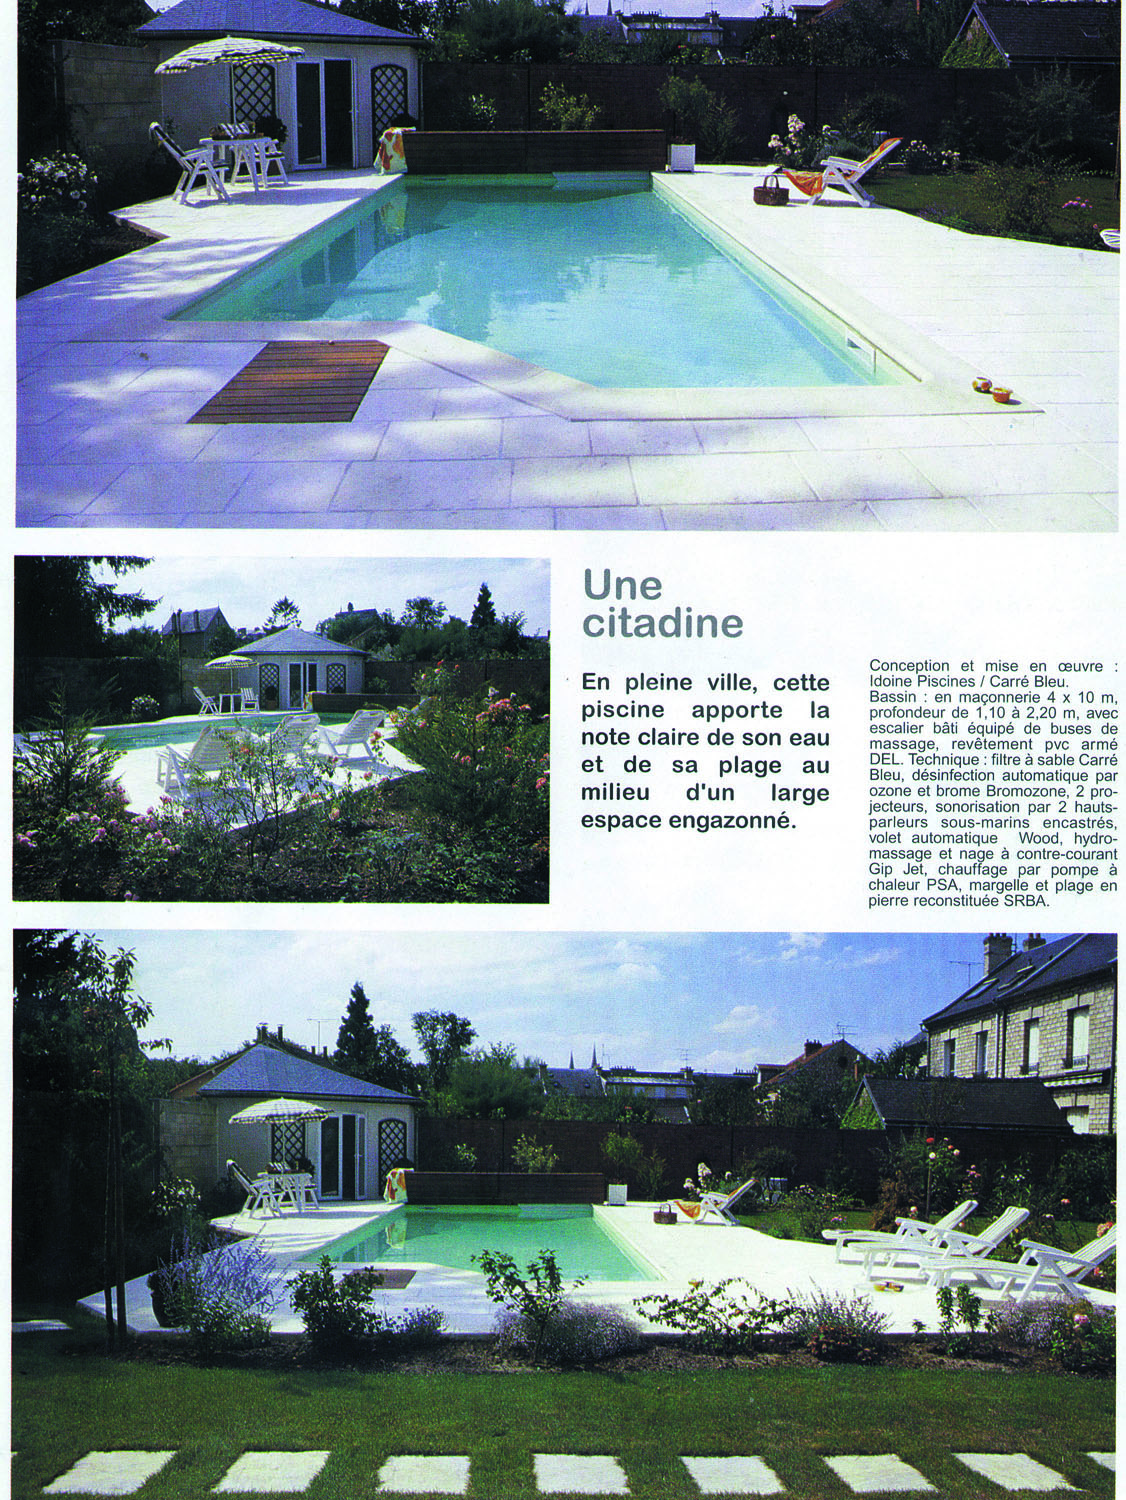 Aquamusique ann e 1995 aquamusique for Piscine de vaise